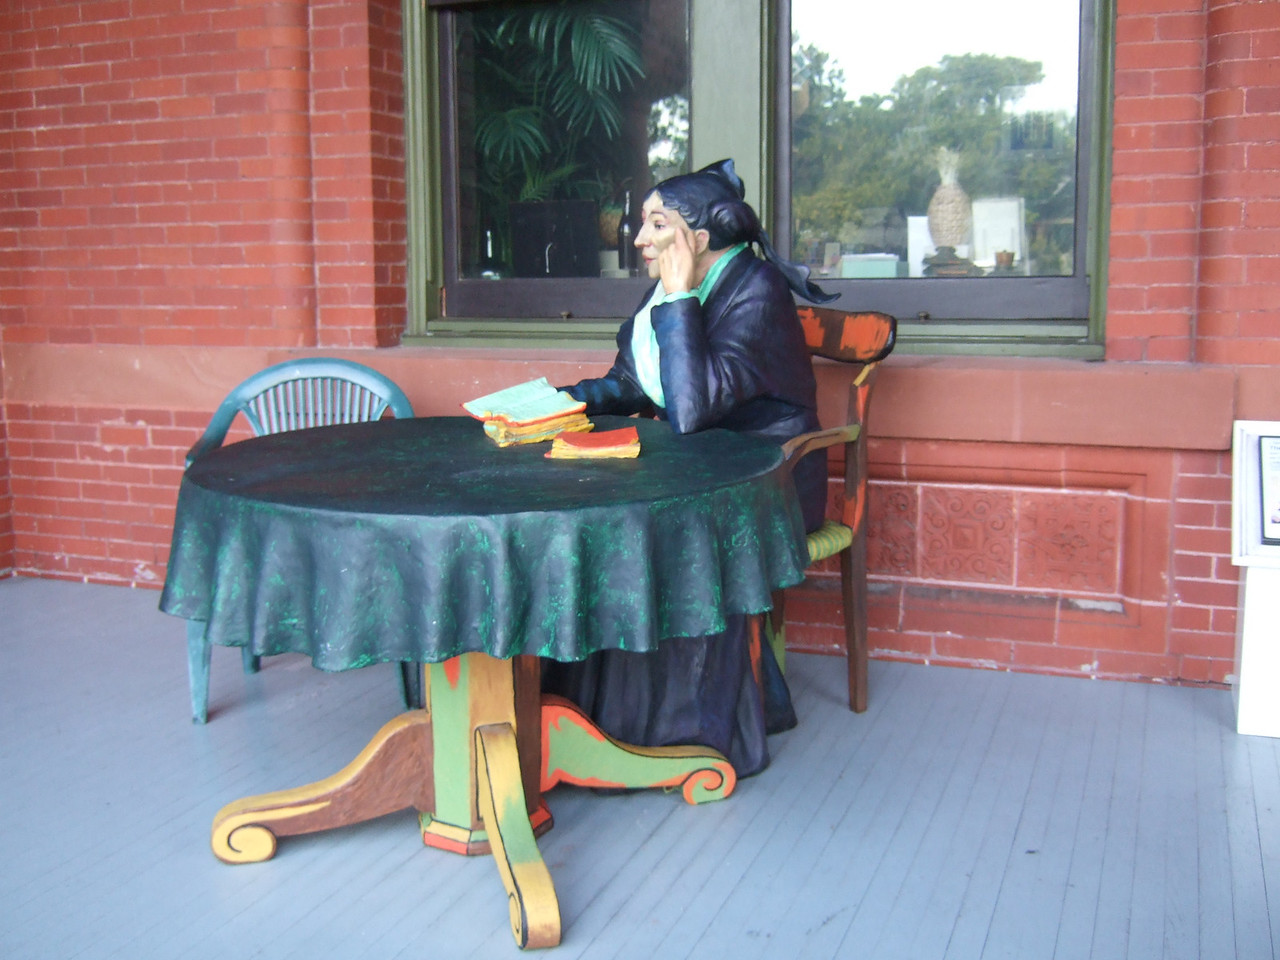 One of the life-sized sculptures by Seward Johnson.